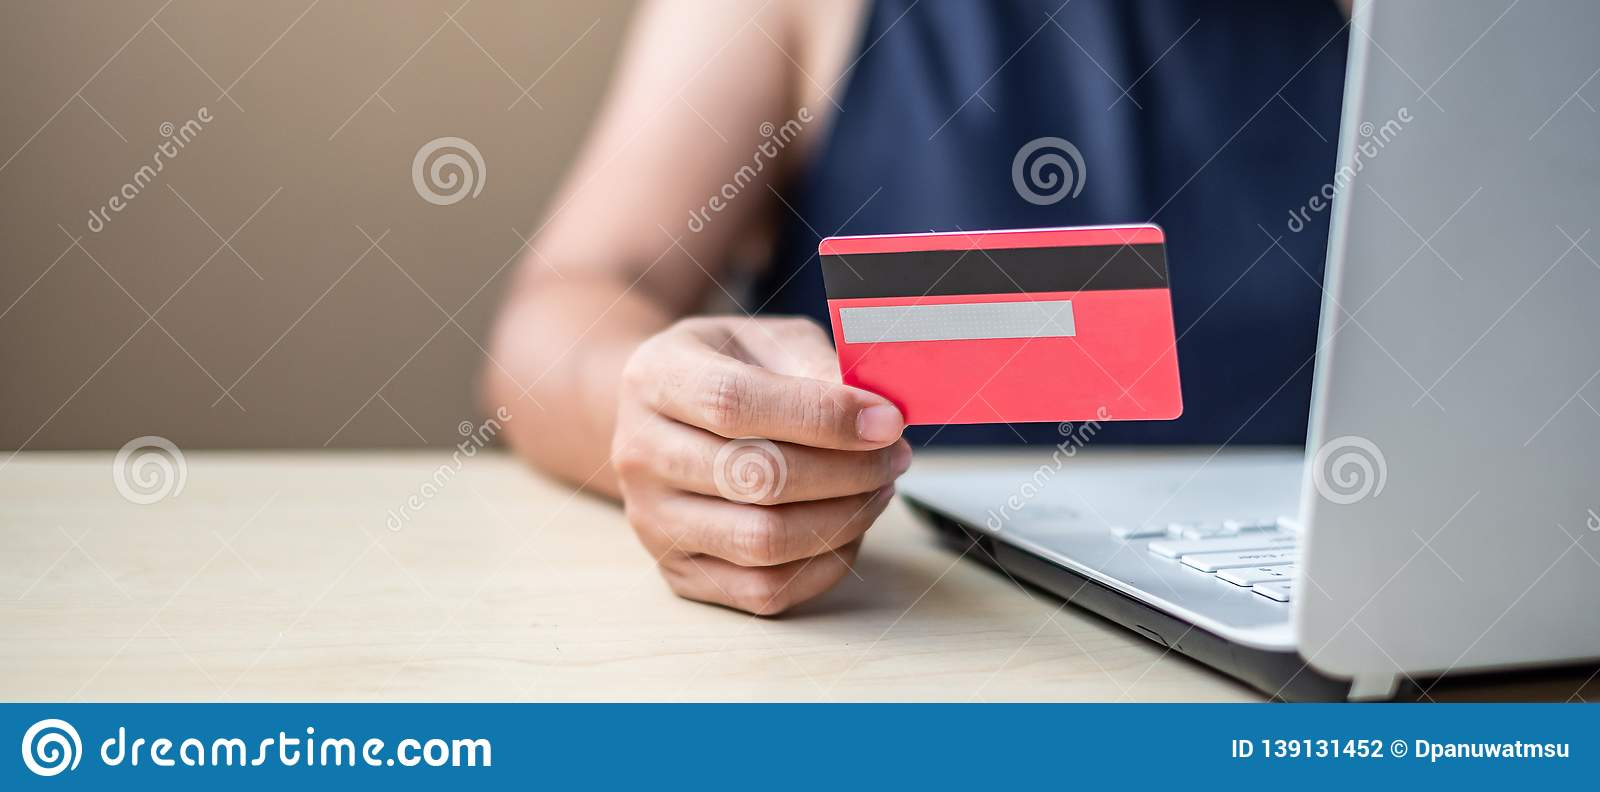 Businesswoman holding credit card for online shopping while making orders via the Internet. business, technology, ecommerce and